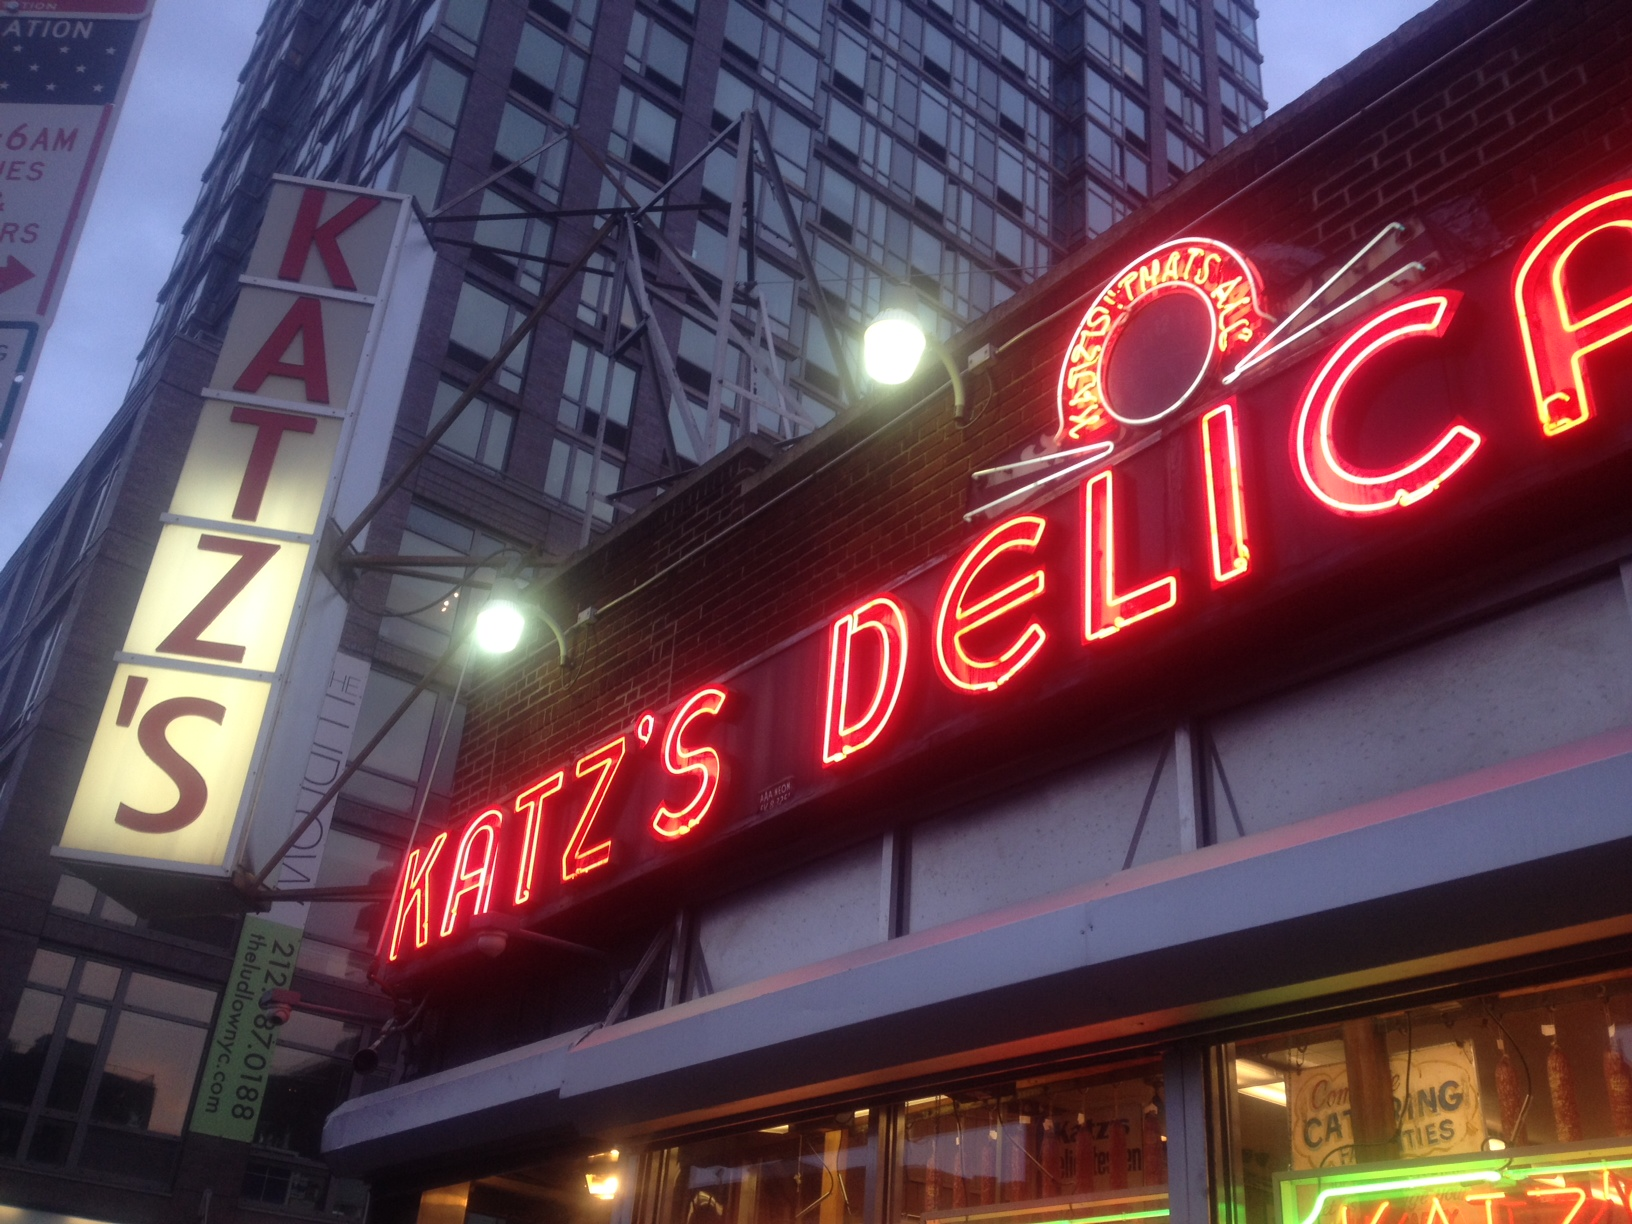 Bright lights, BIG pastrami